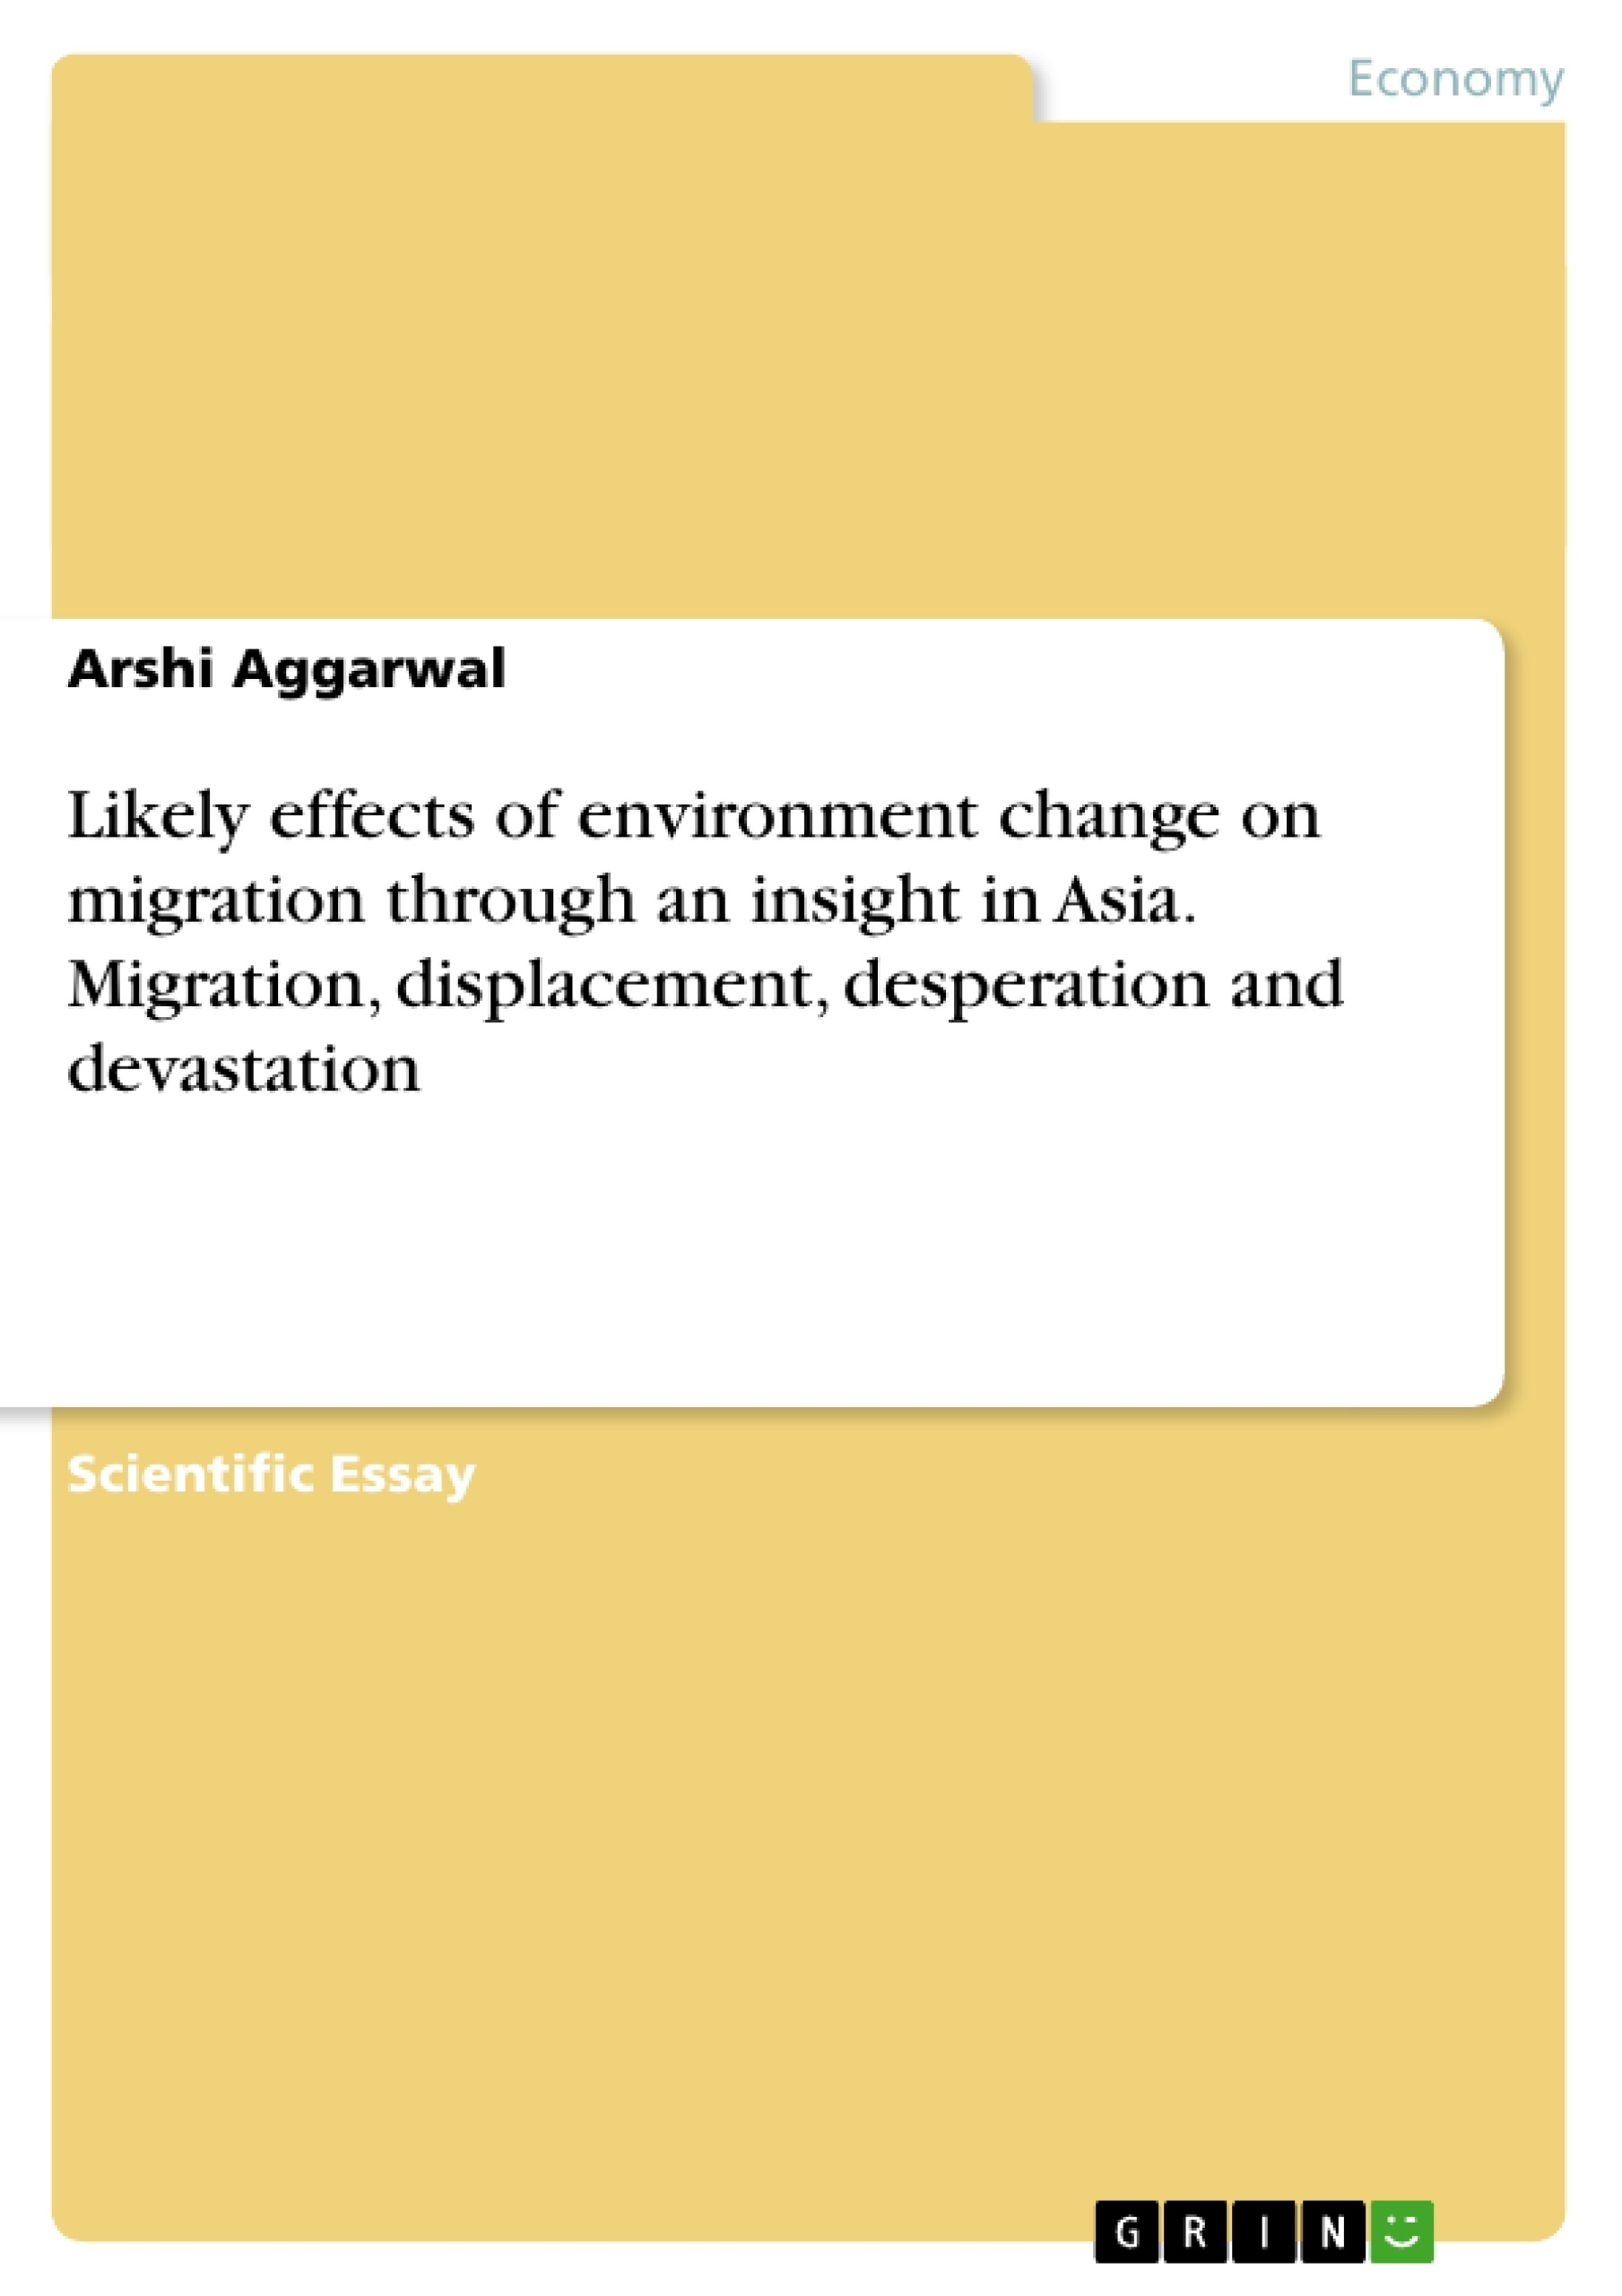 Title: Likely effects of environment change on migration through an insight in Asia. Migration, displacement, desperation and devastation